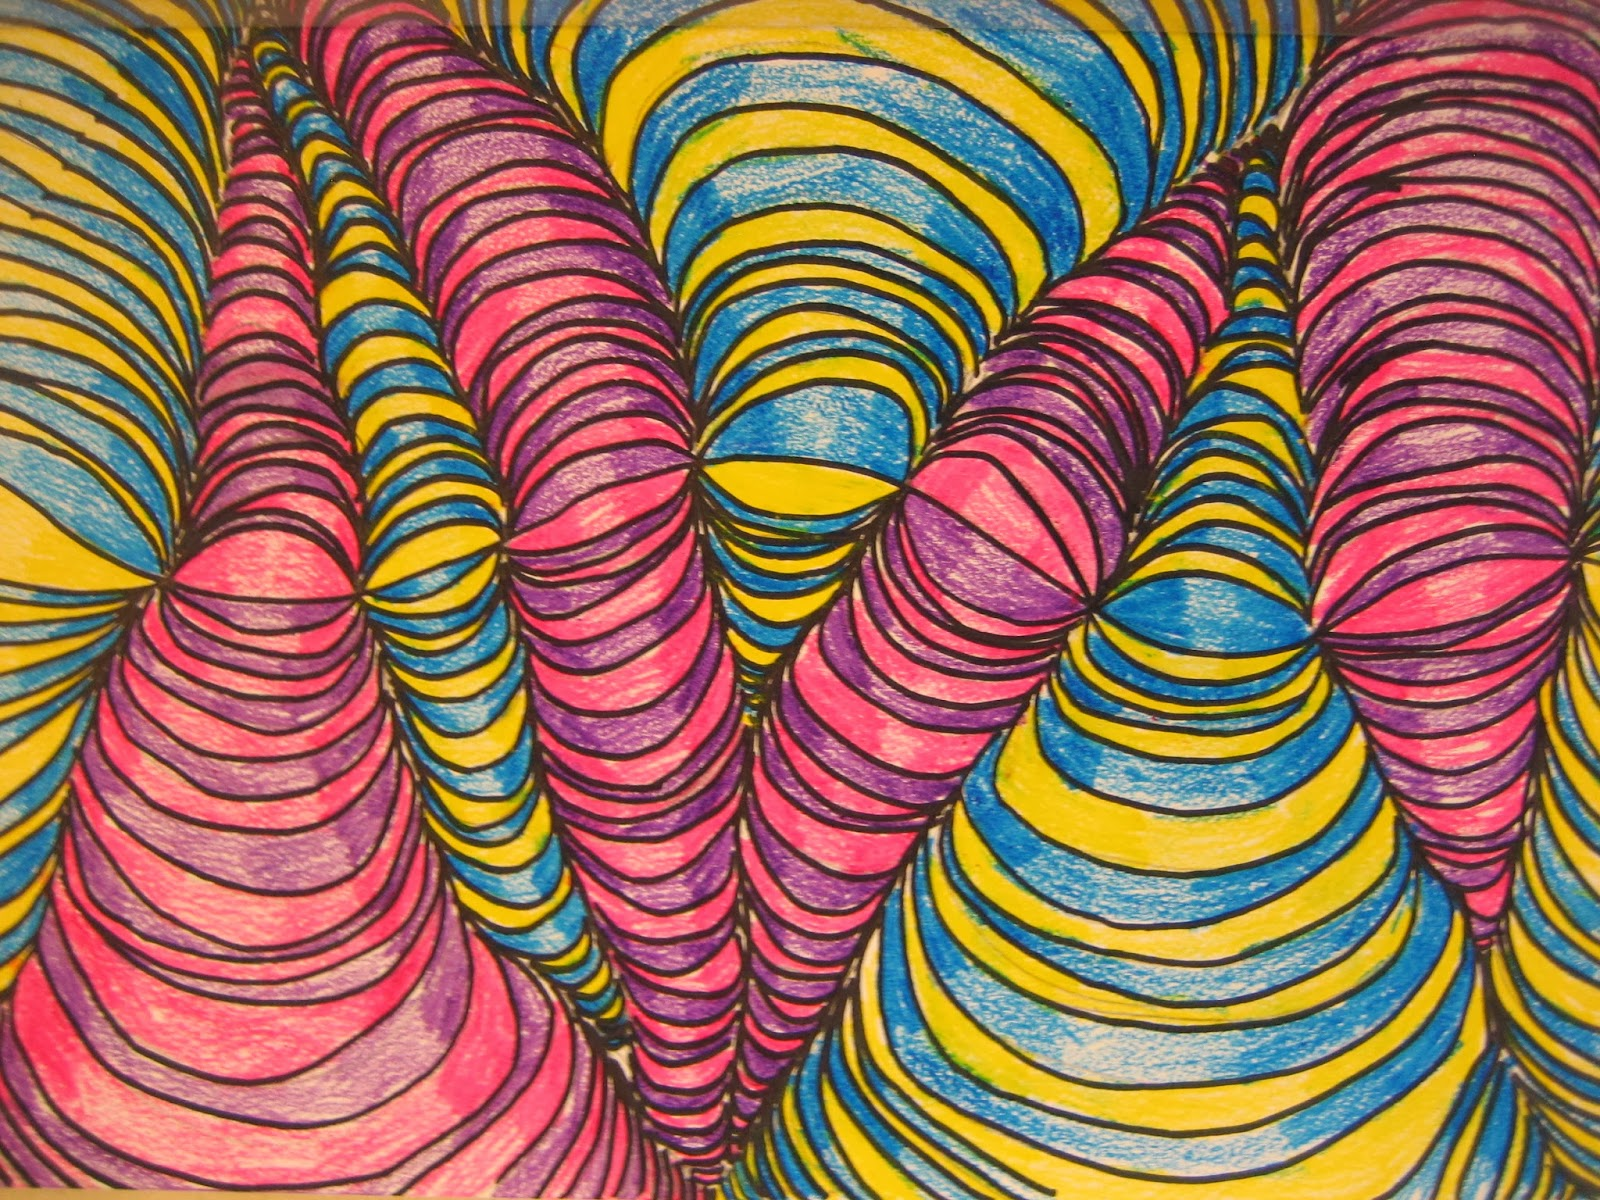 Line Design Op Art : Creations from young minds fourth grade line design op art